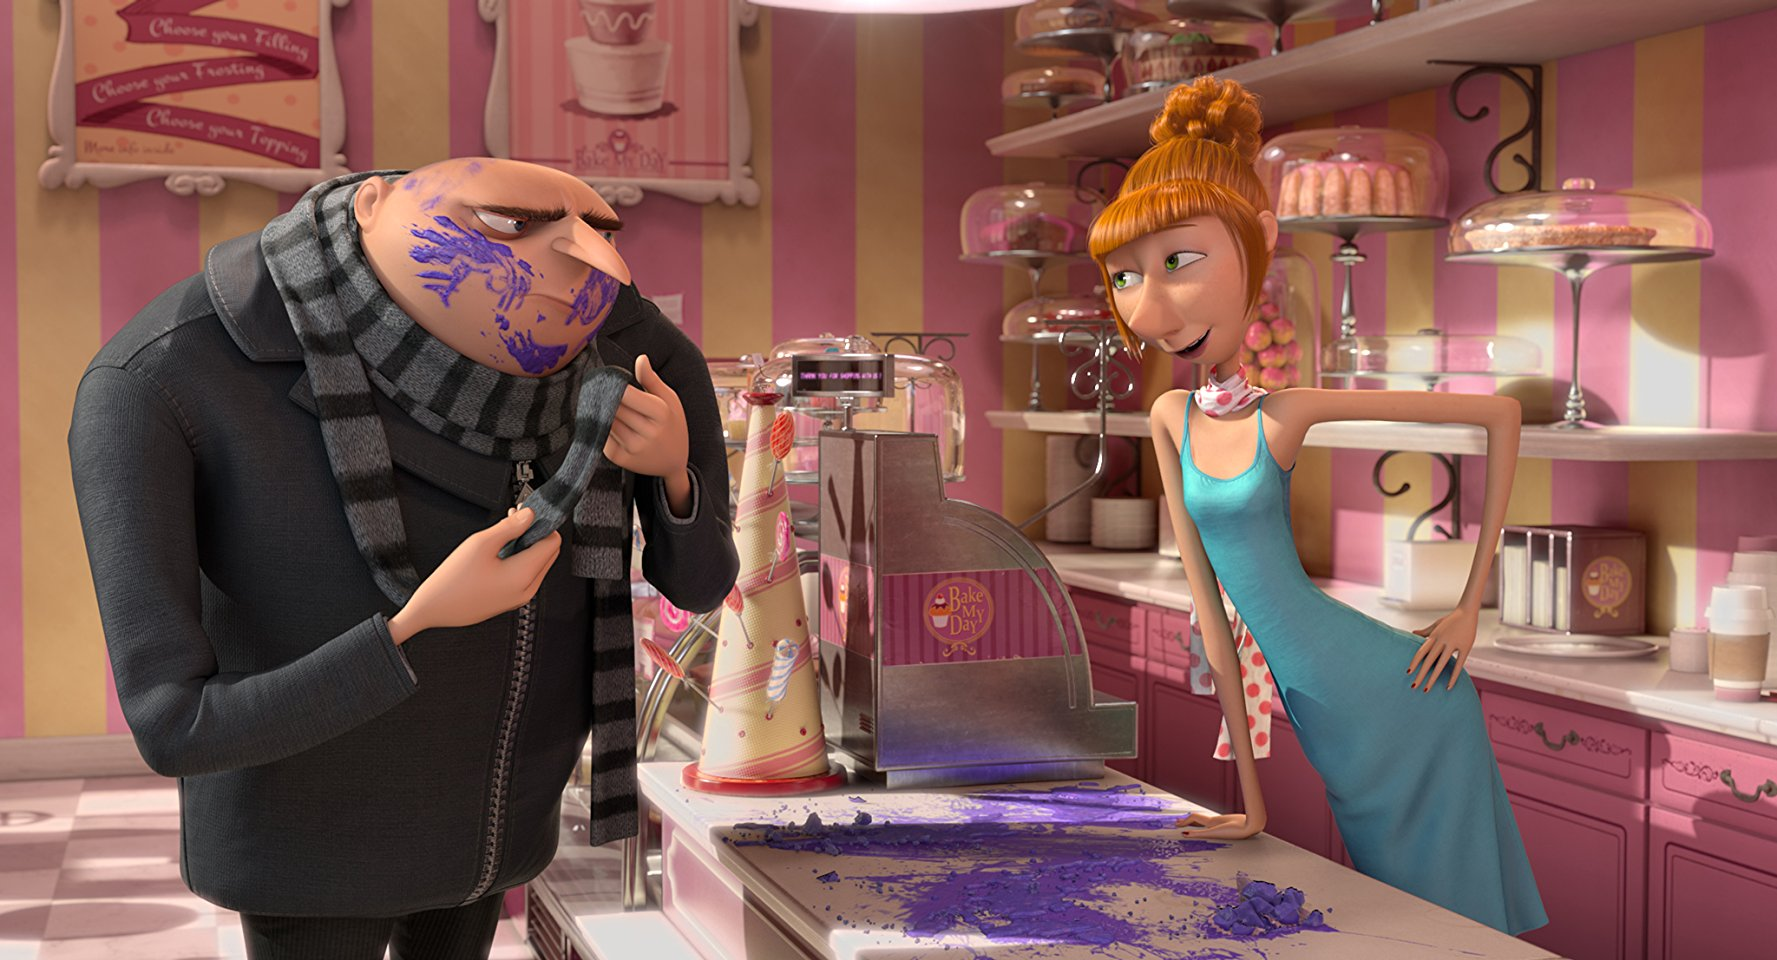 Fotos de lucy wilde Watch Movies And Tv Shows With Character Lucy Wilde For Free List Of Movies Despicable Me 3 Despicable Me 2